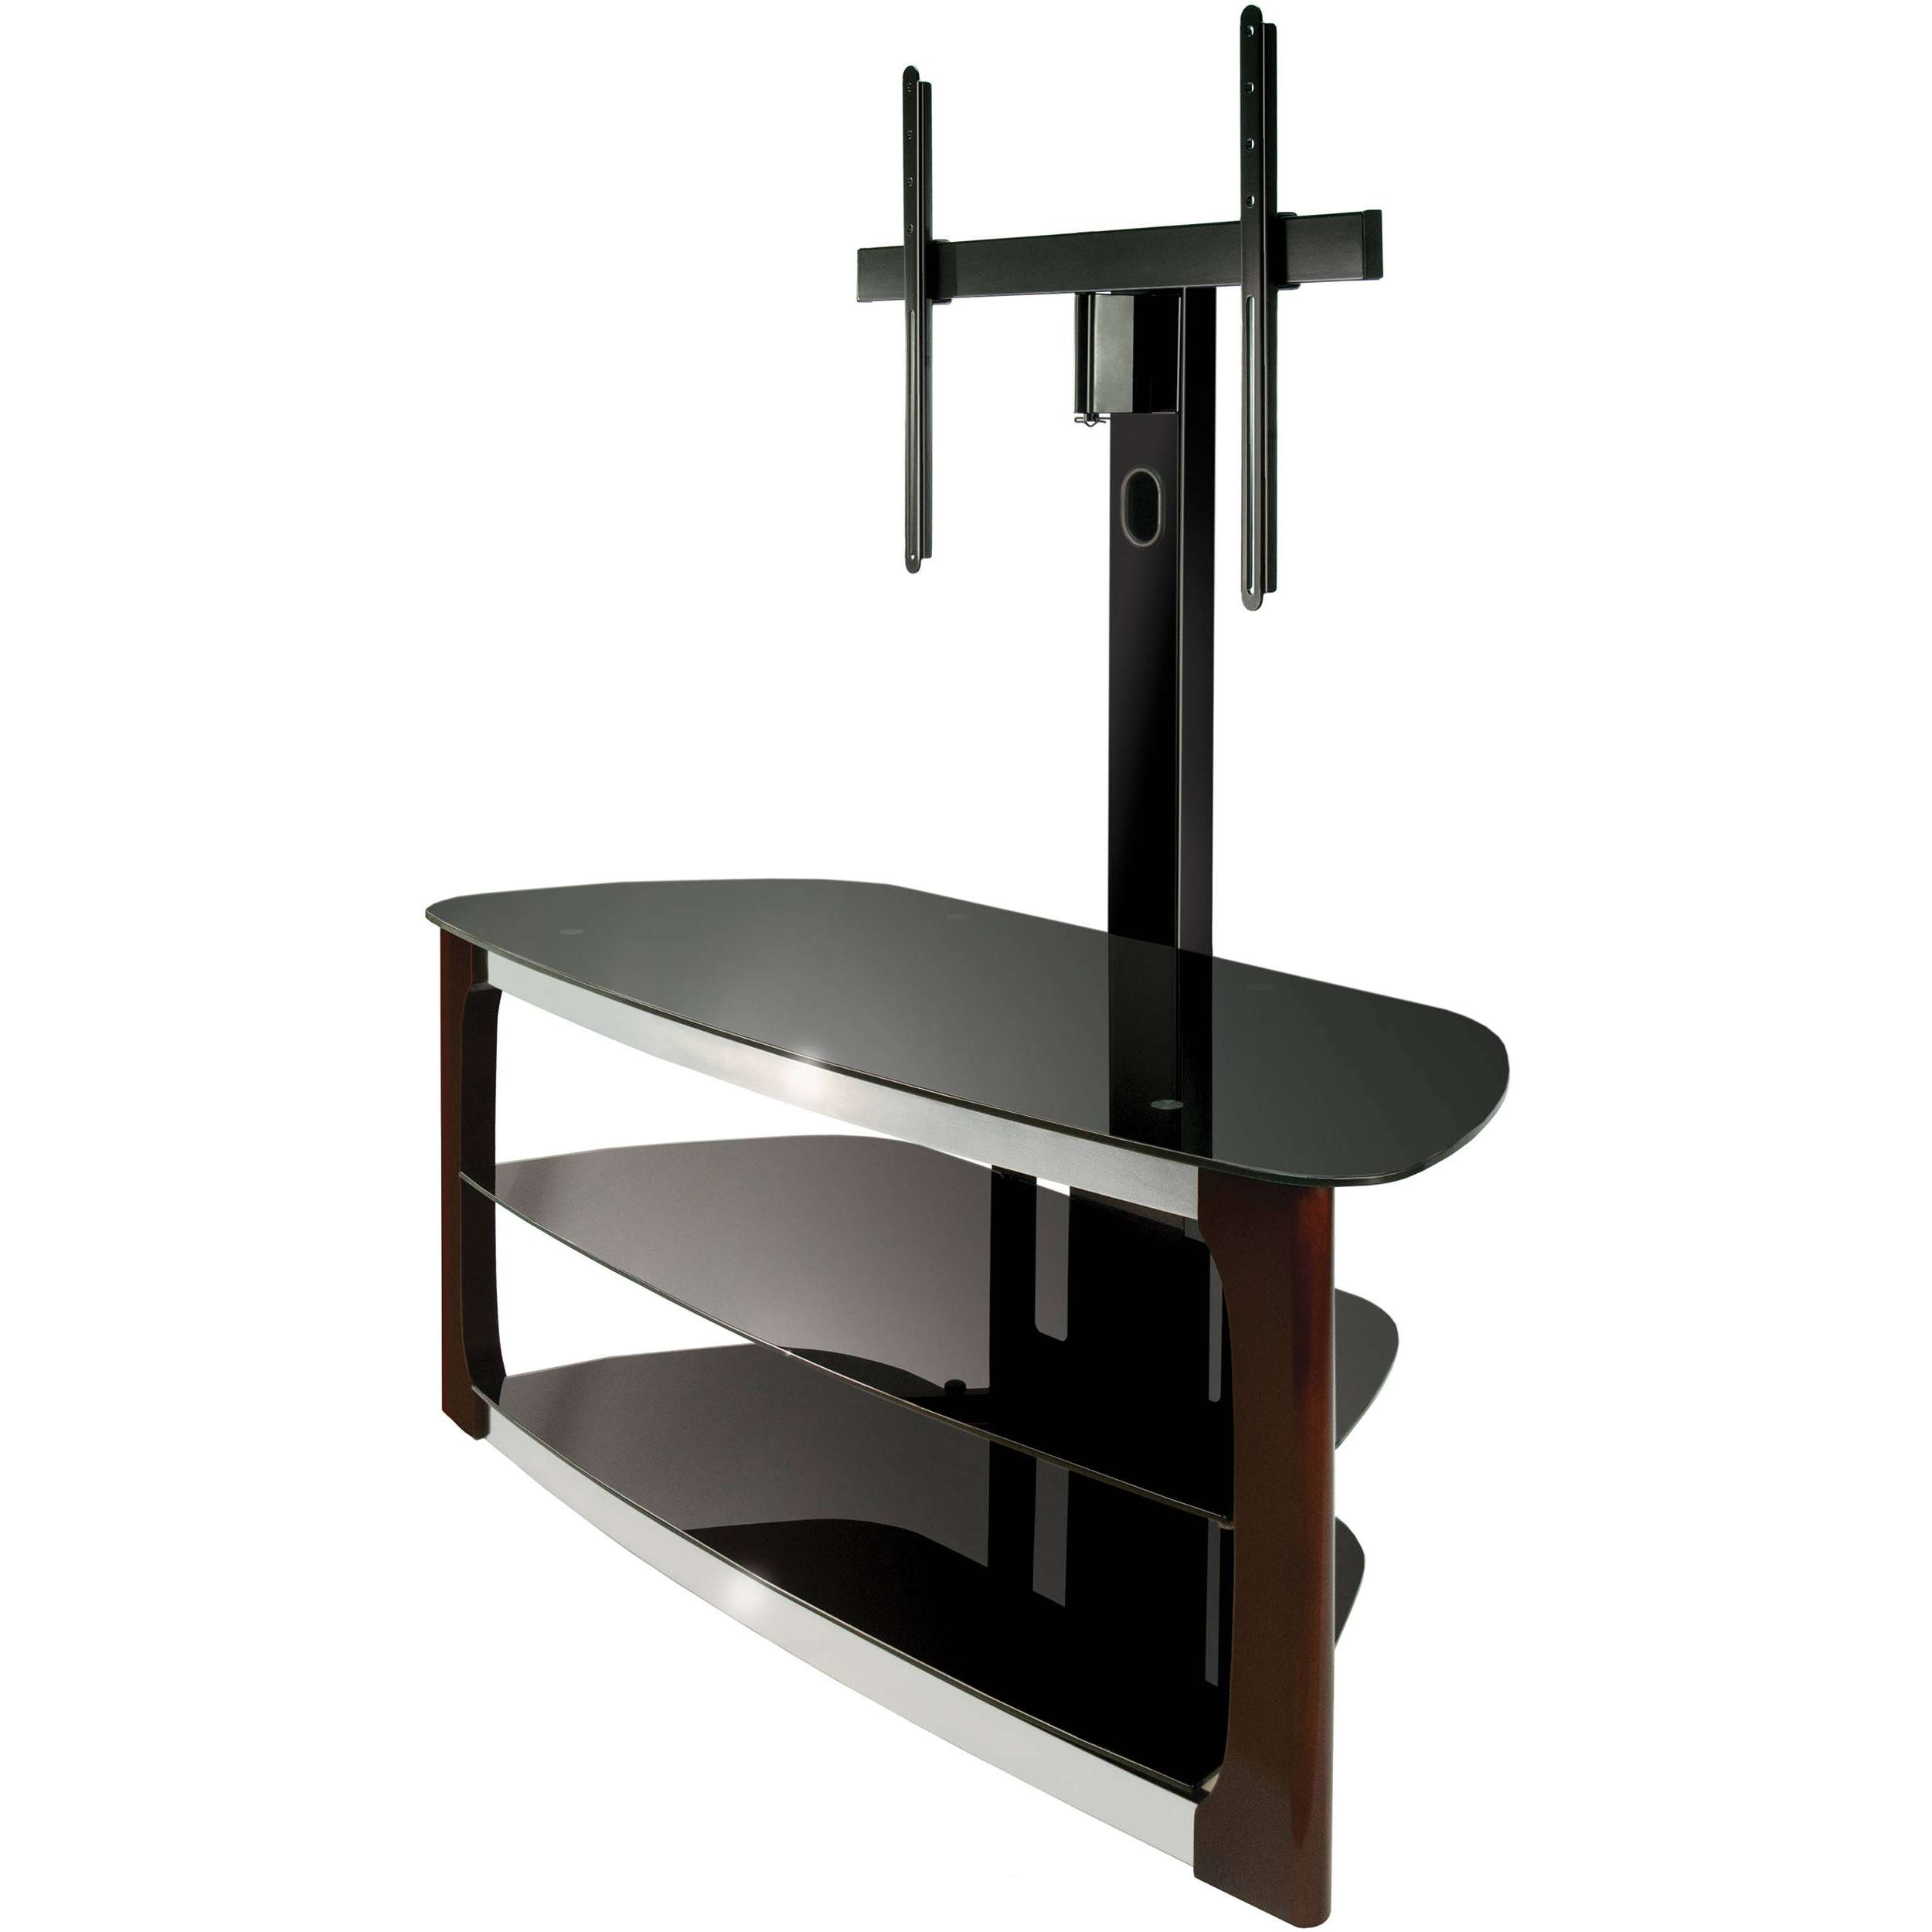 Fancy Bell O Triple Play Tv Stand 23 In Modern Home Decor Throughout Bell'o Triple Play Tv Stands (View 14 of 15)